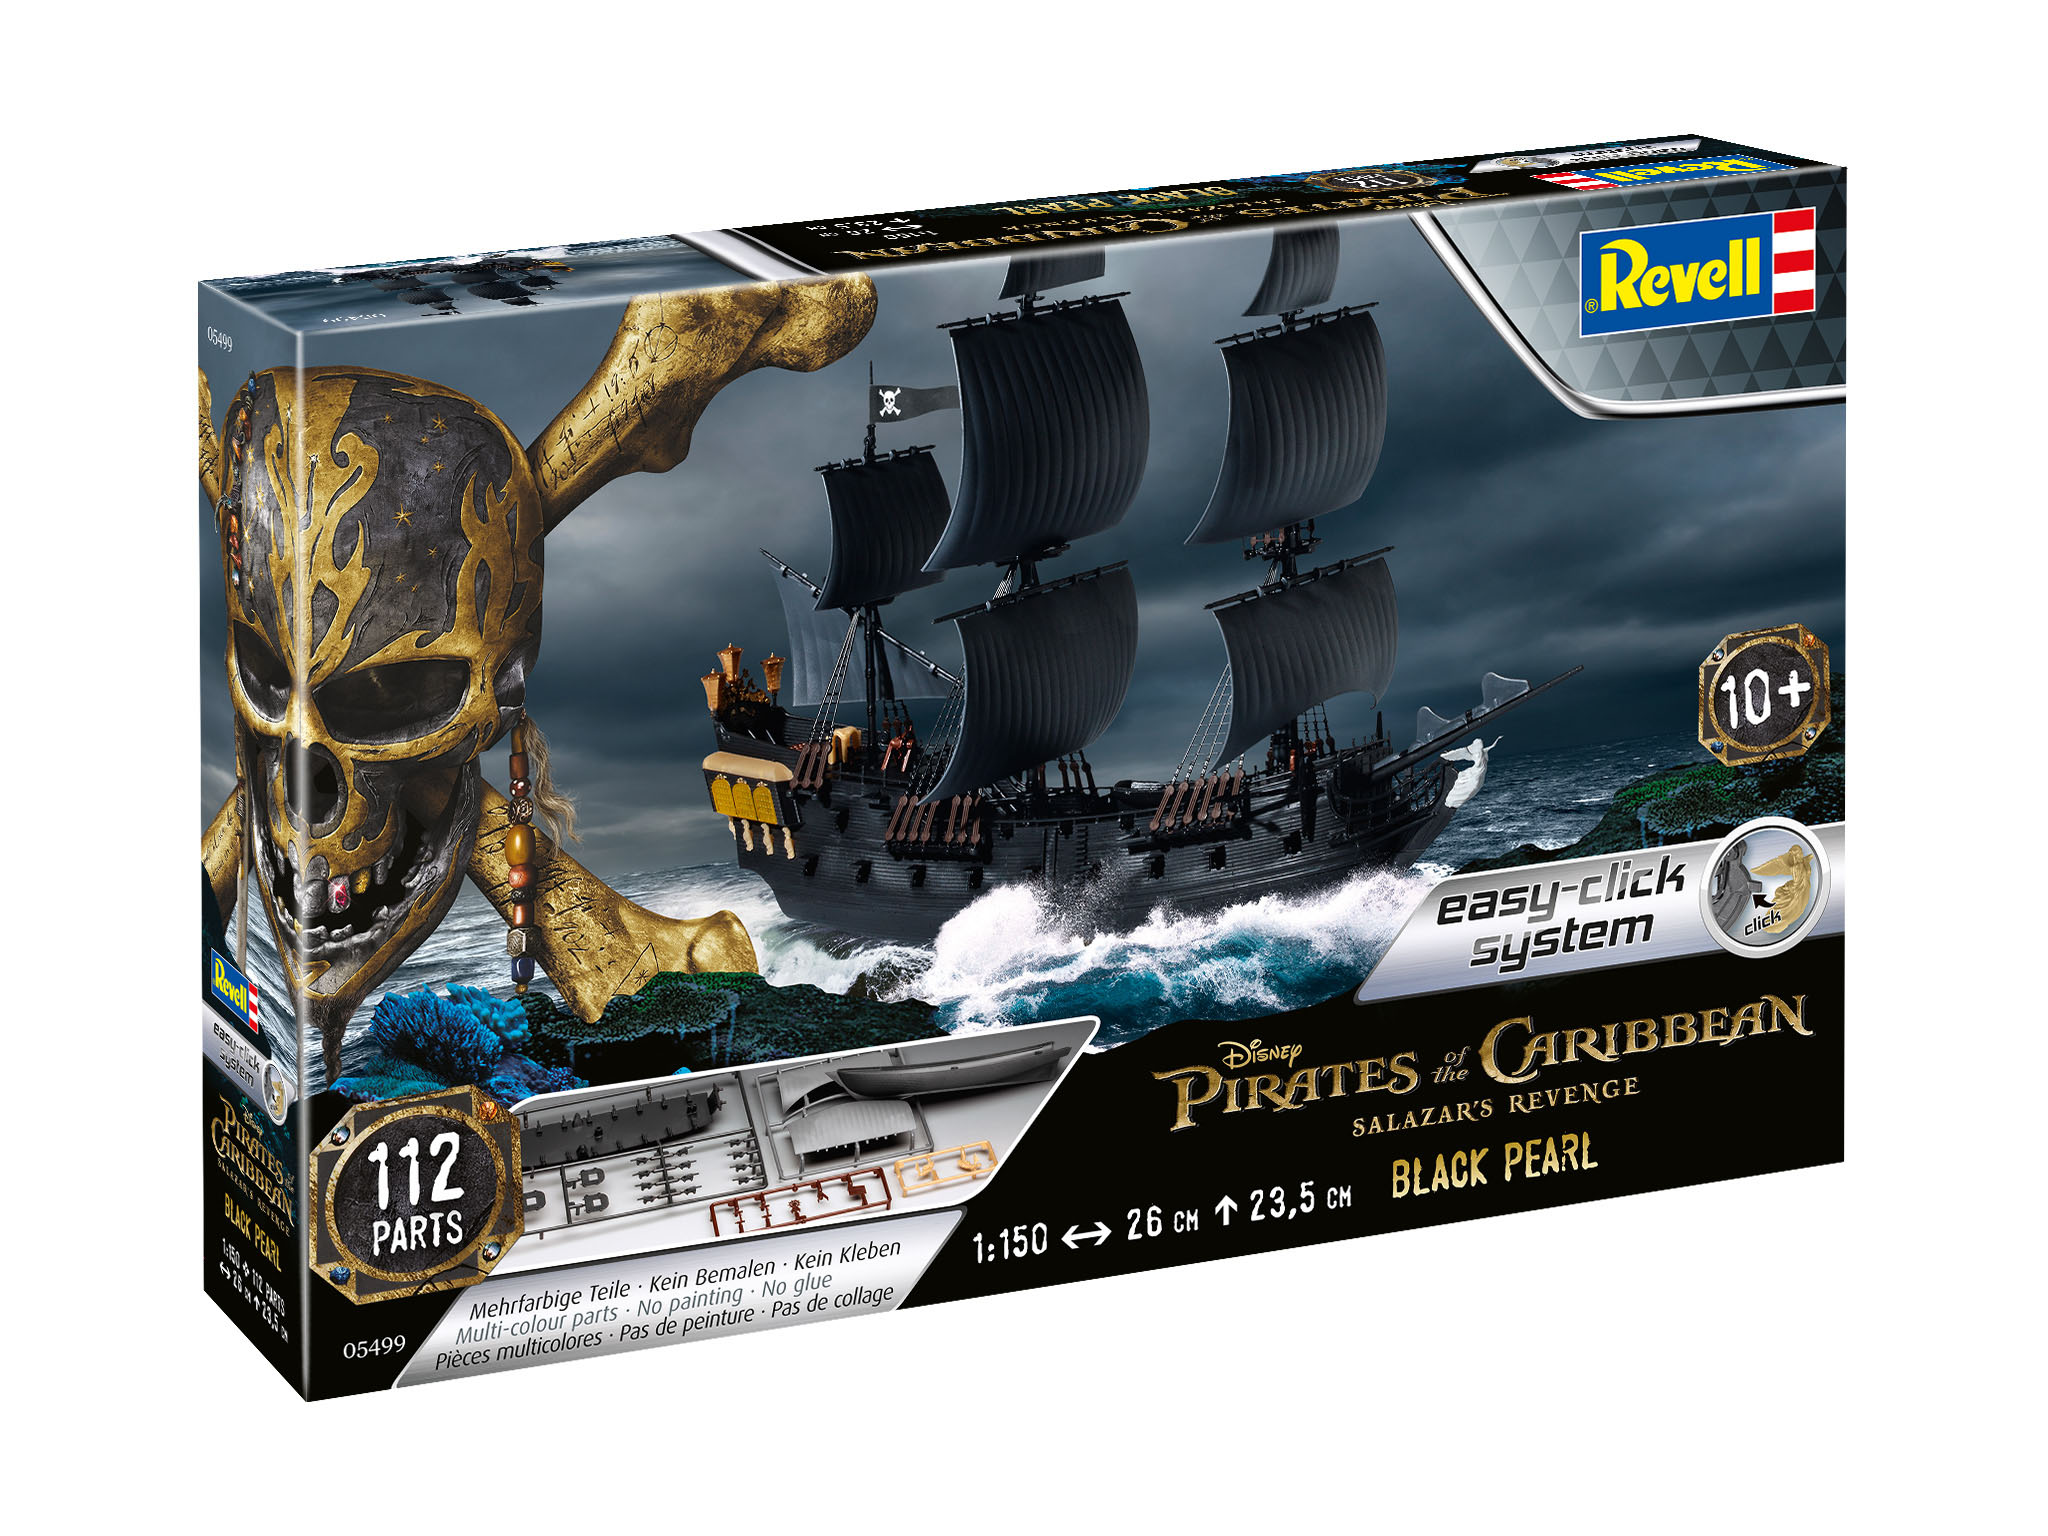 Modellbau - 3D Puzzle Easy Click System - Black Pearl